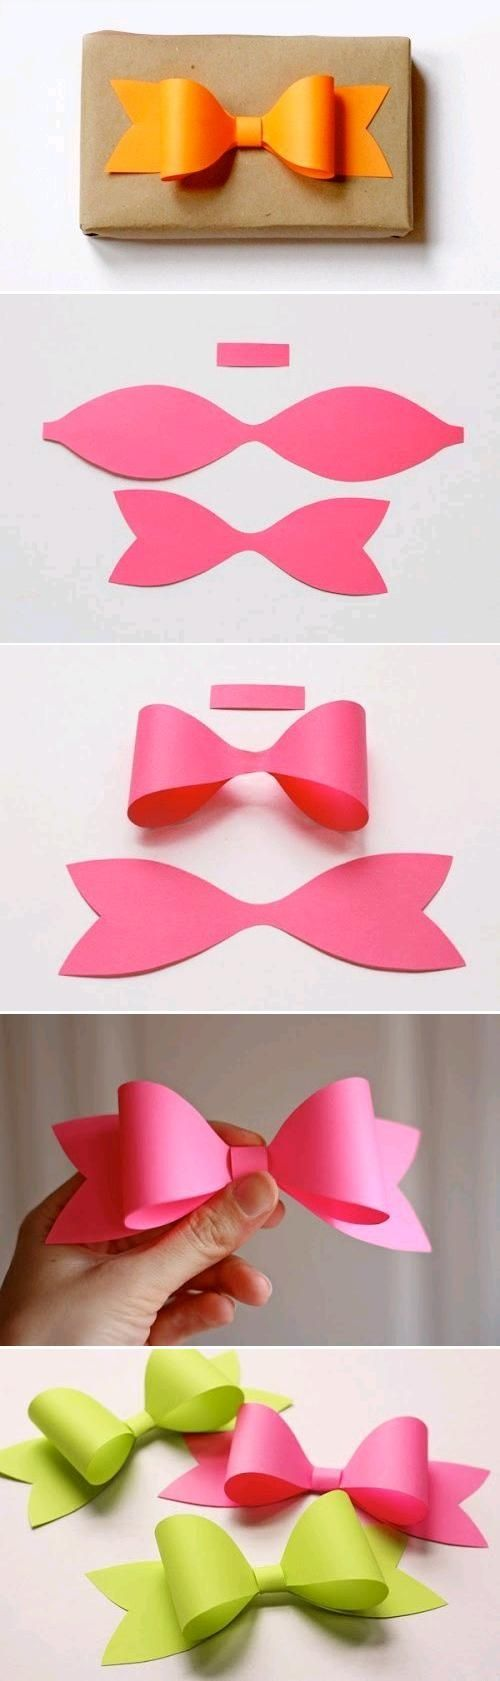 Paper Bow DIY from How About Orange @Jess Pearl Pearl Liu Jones